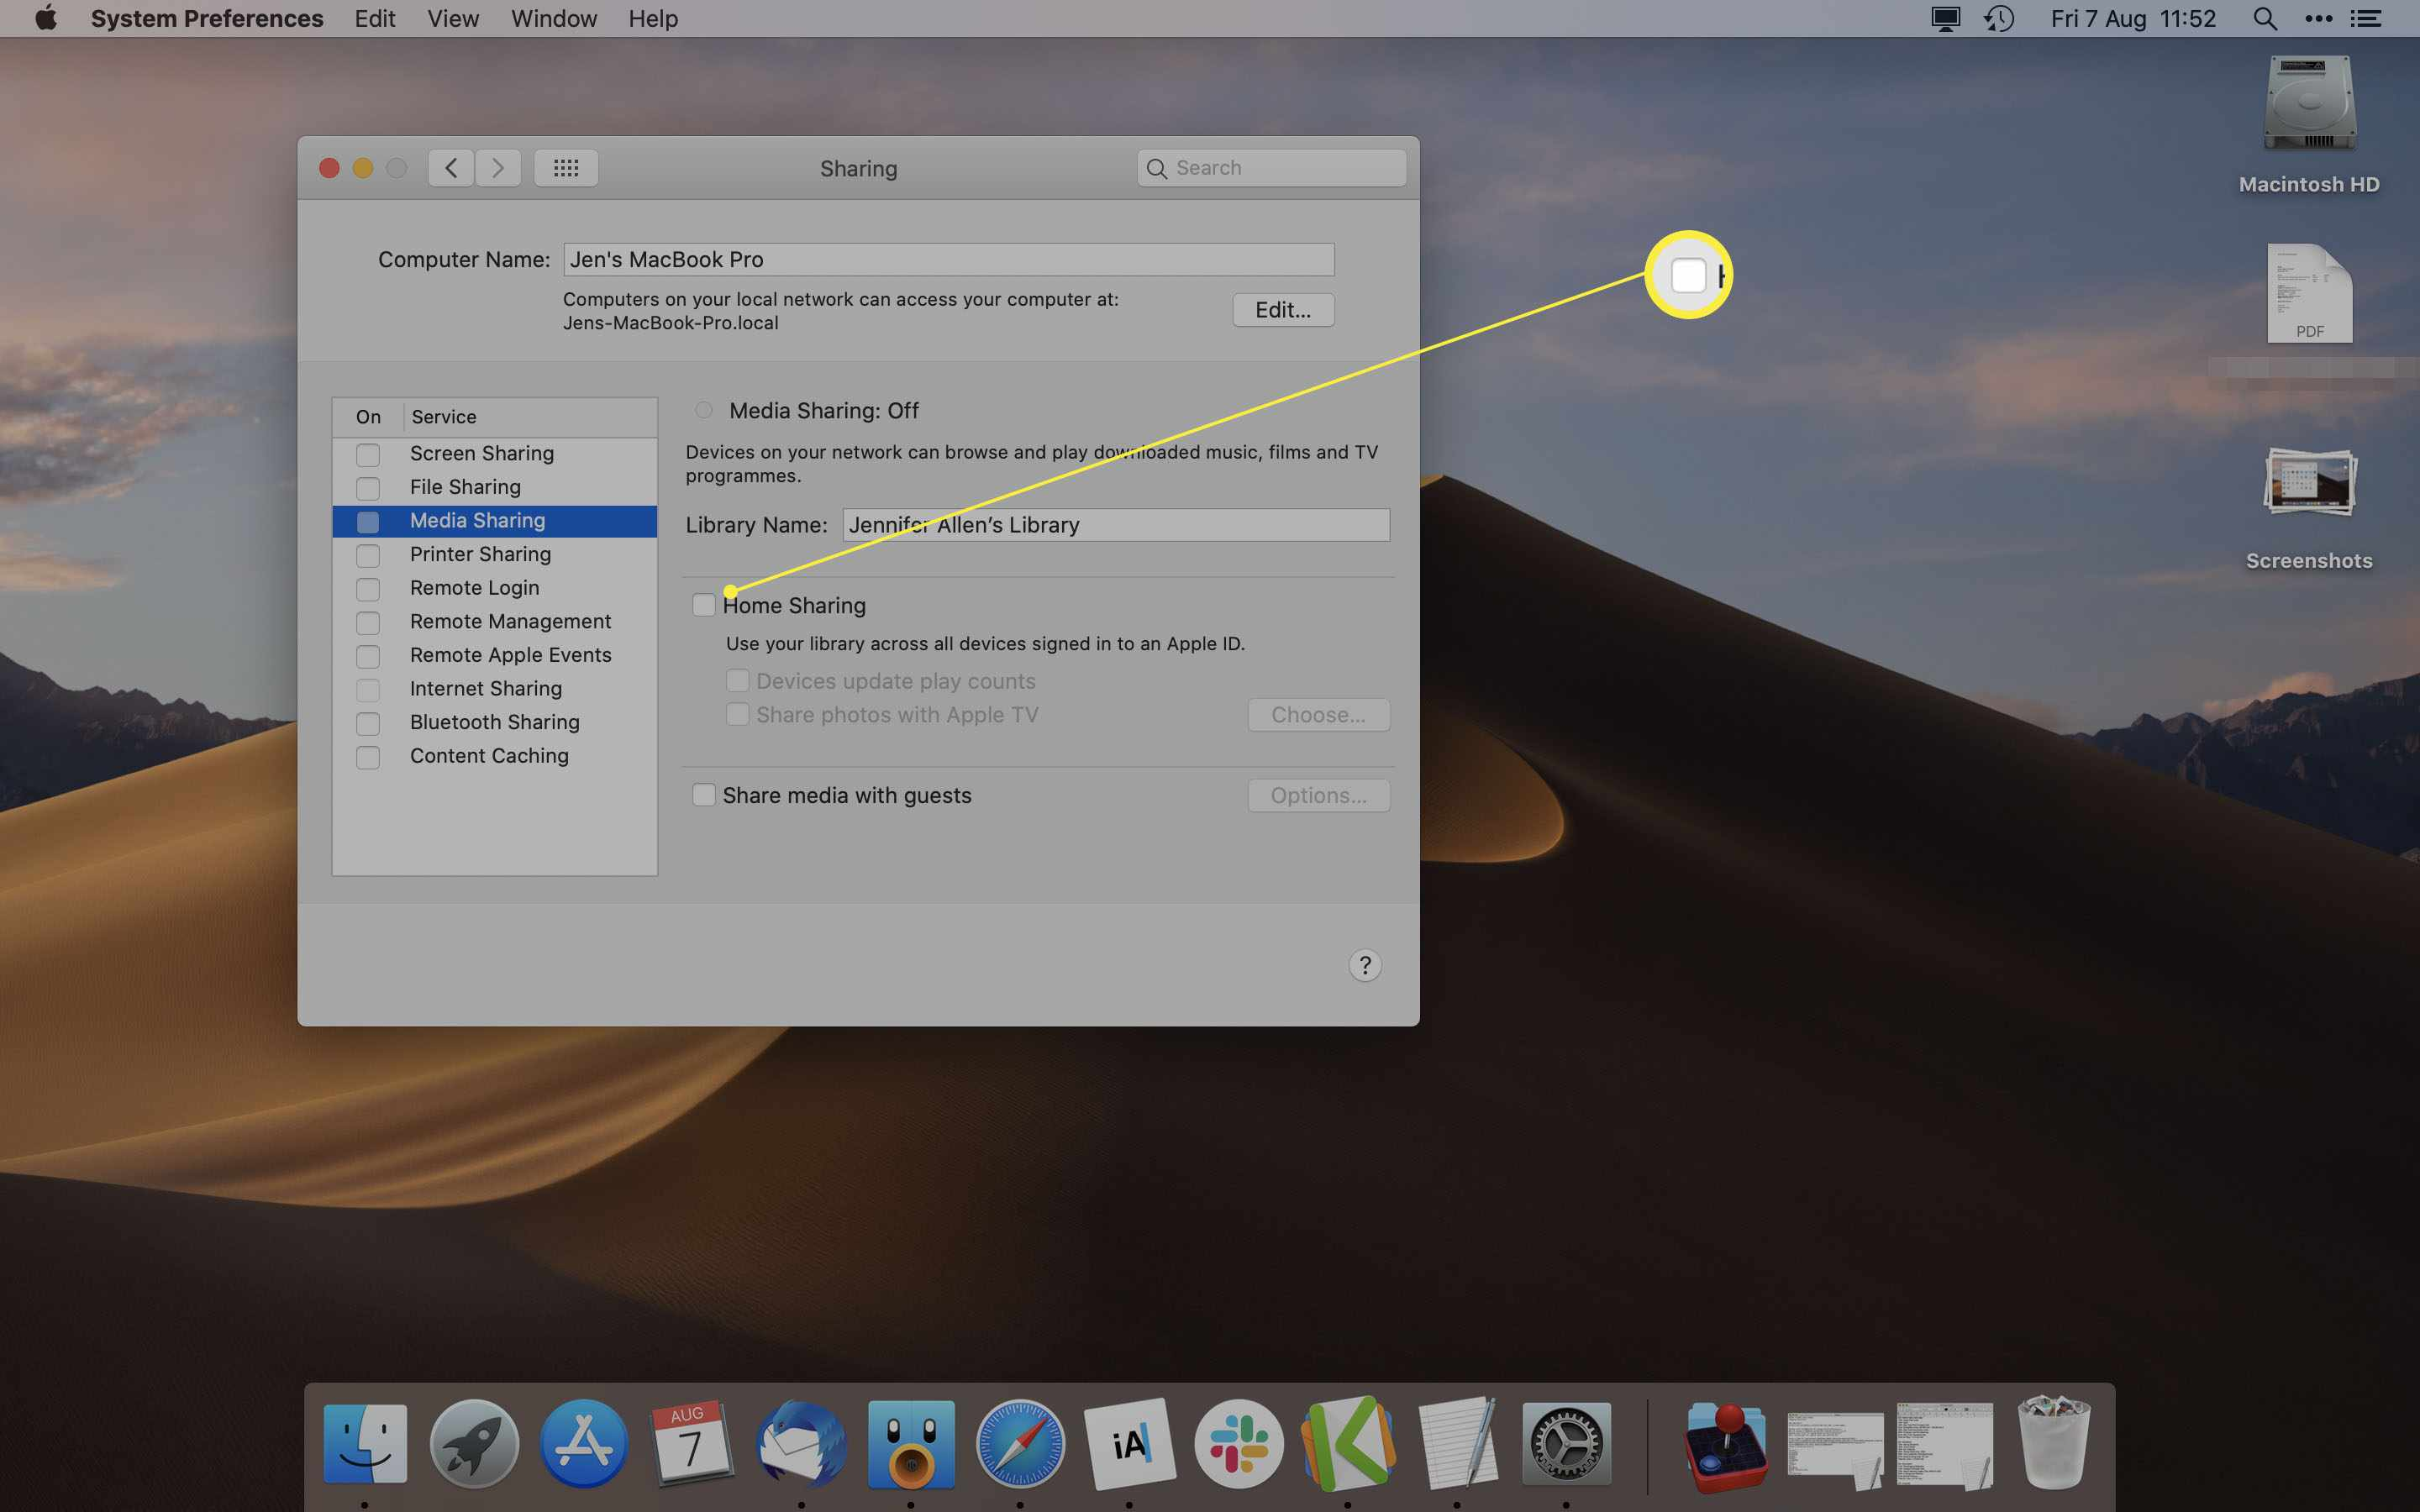 Mac System Preferences with Media Sharing highlighted